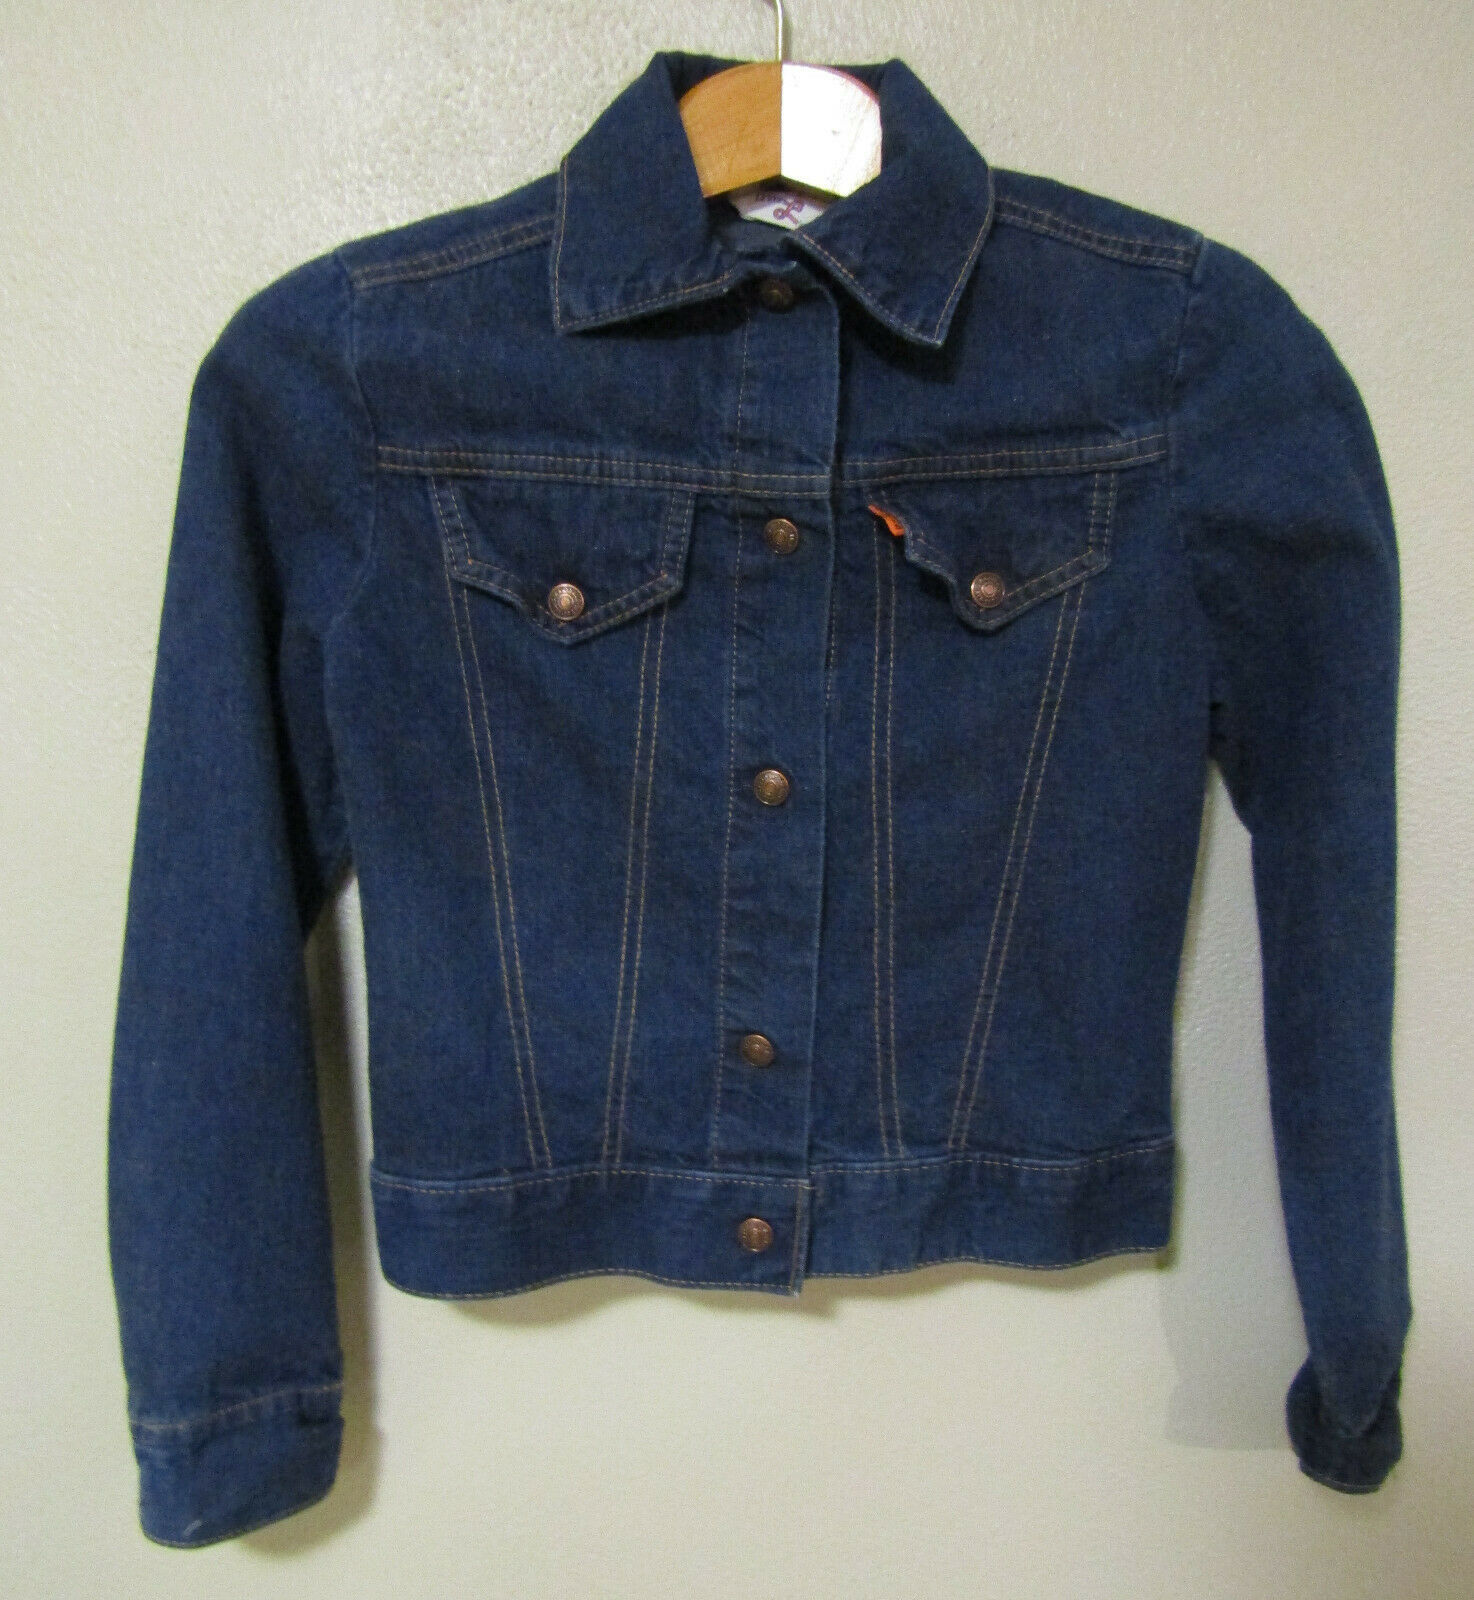 Primary image for Levis Strauss Boy Girl Blue Denim Jacket Size Small Child 1970s Trucker Made USA